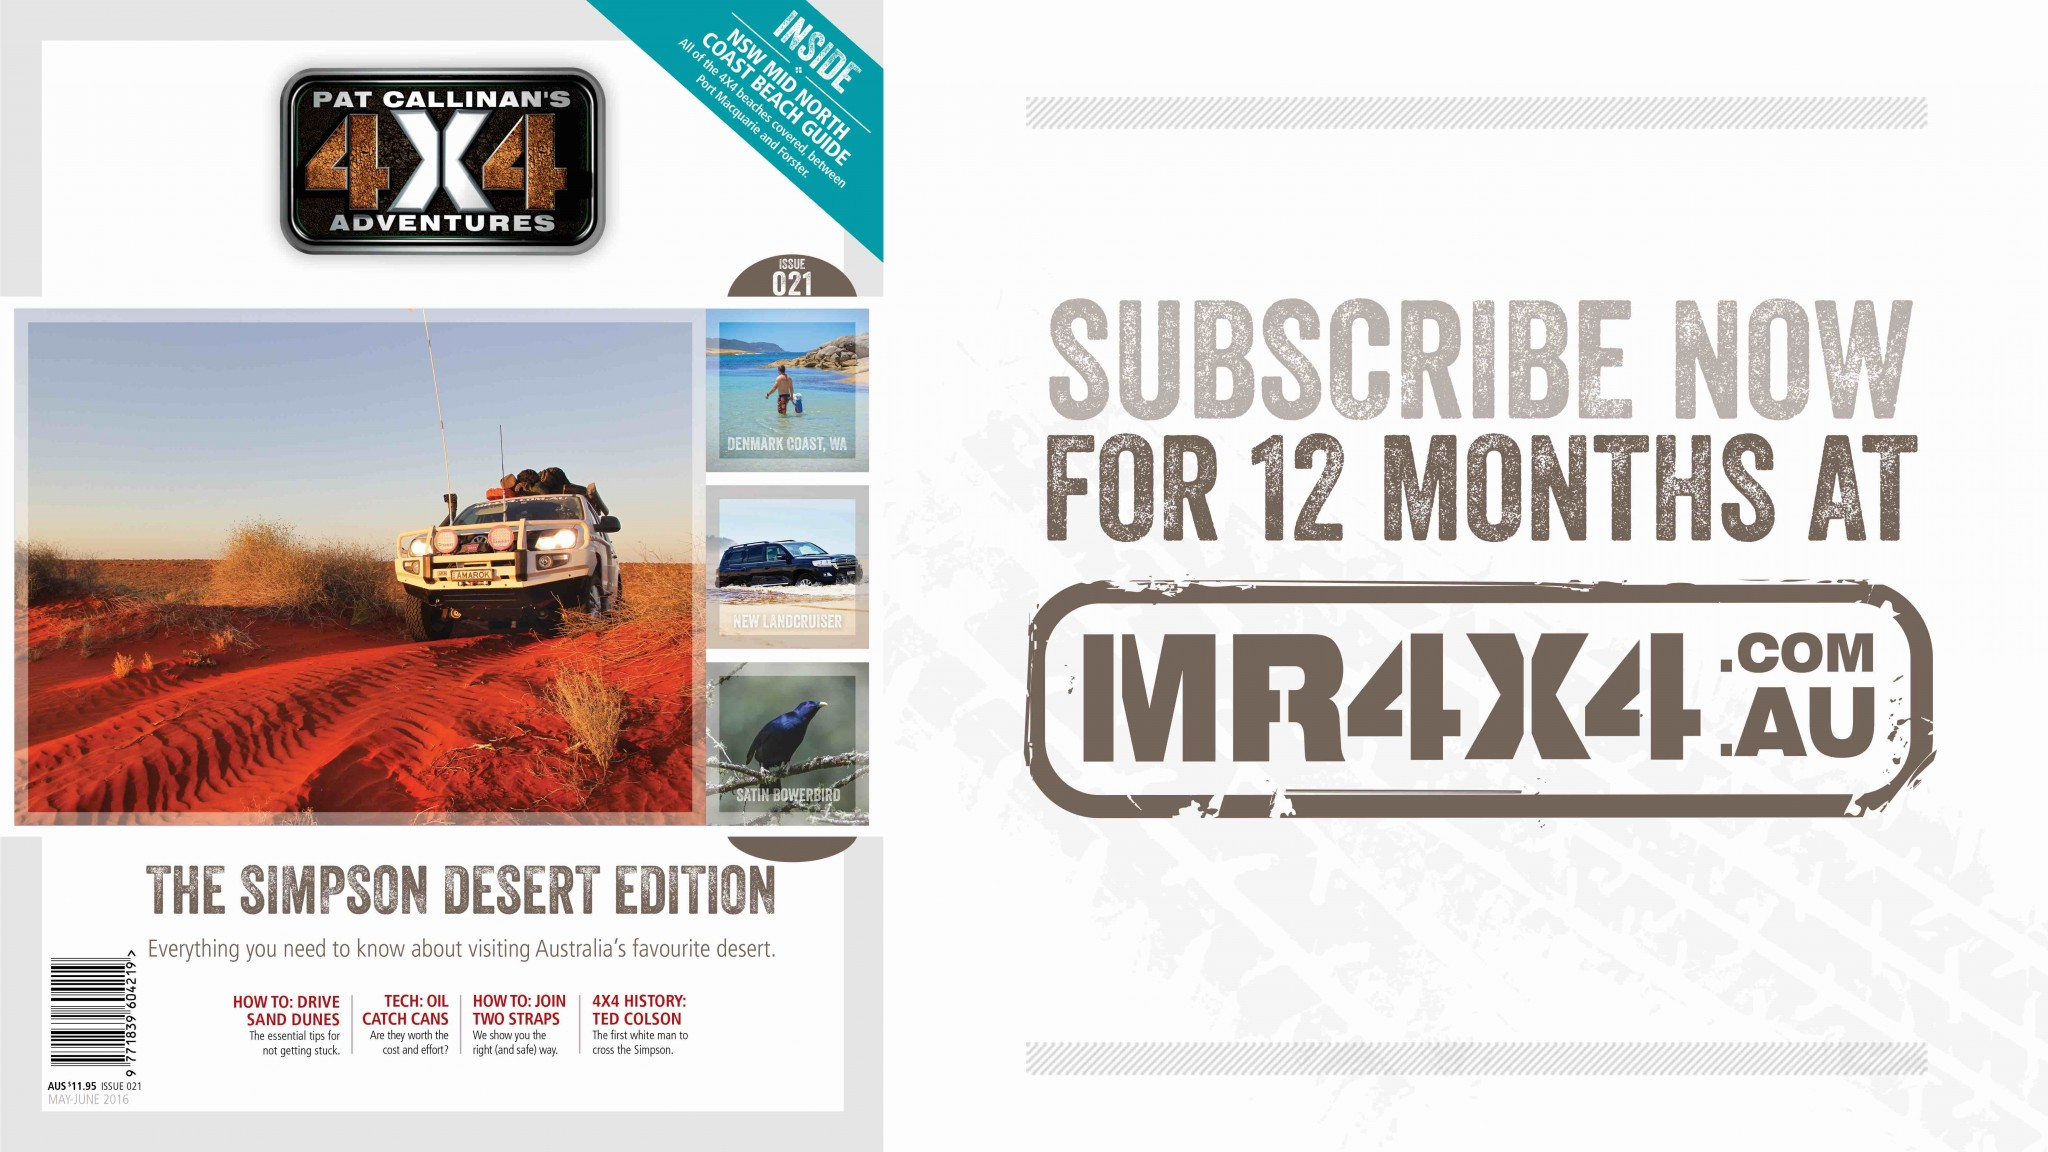 Issue 021, The Simpson Desert Edition: With free Map of Australia